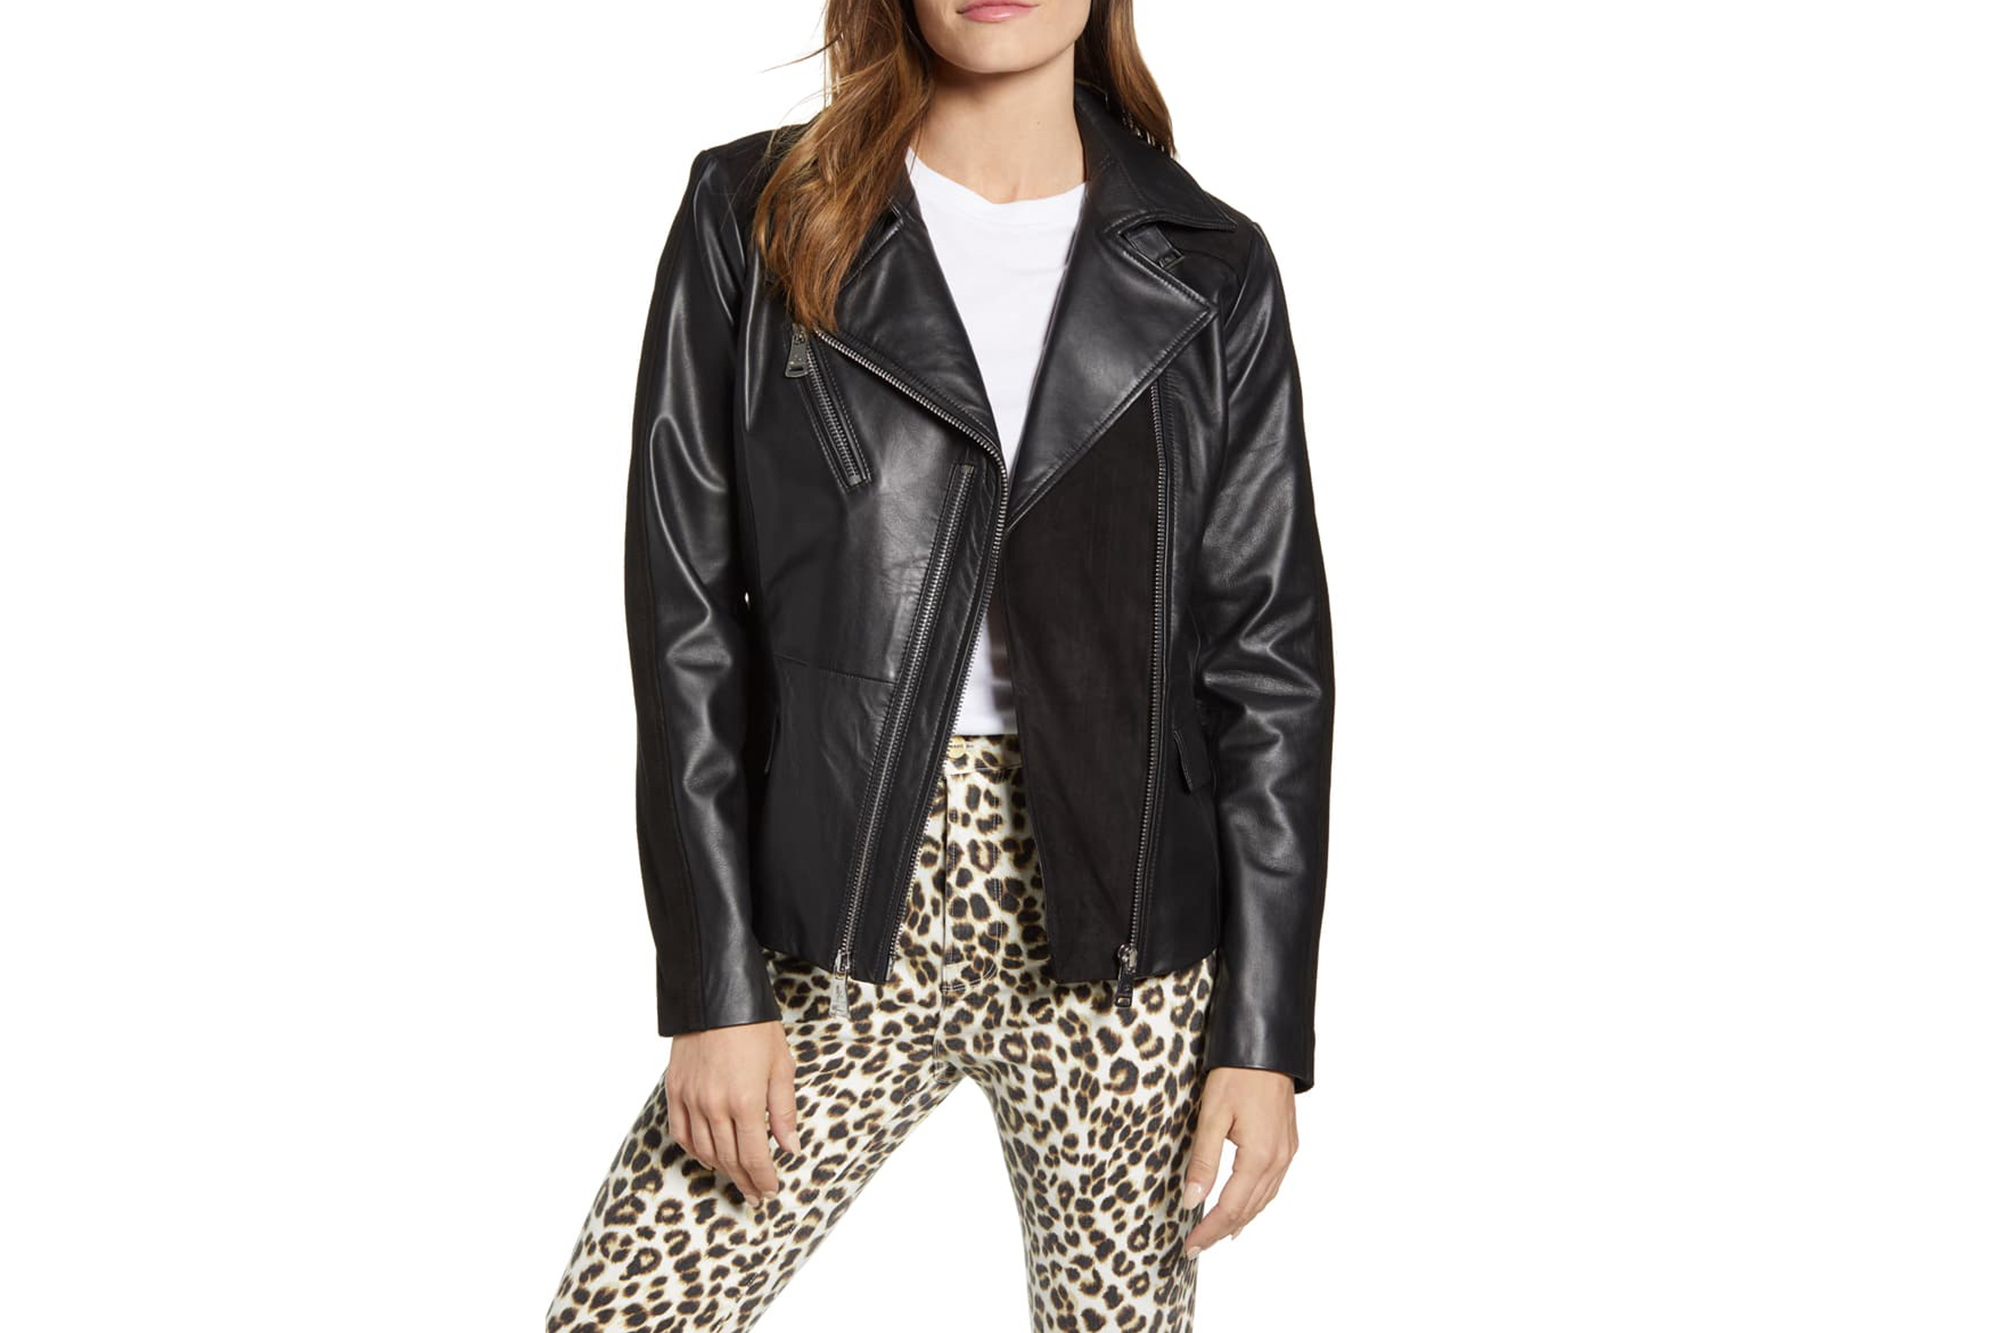 51405e2b2 Nordstrom Has the Under-$400 Leather Jacket You'll Wear Forever